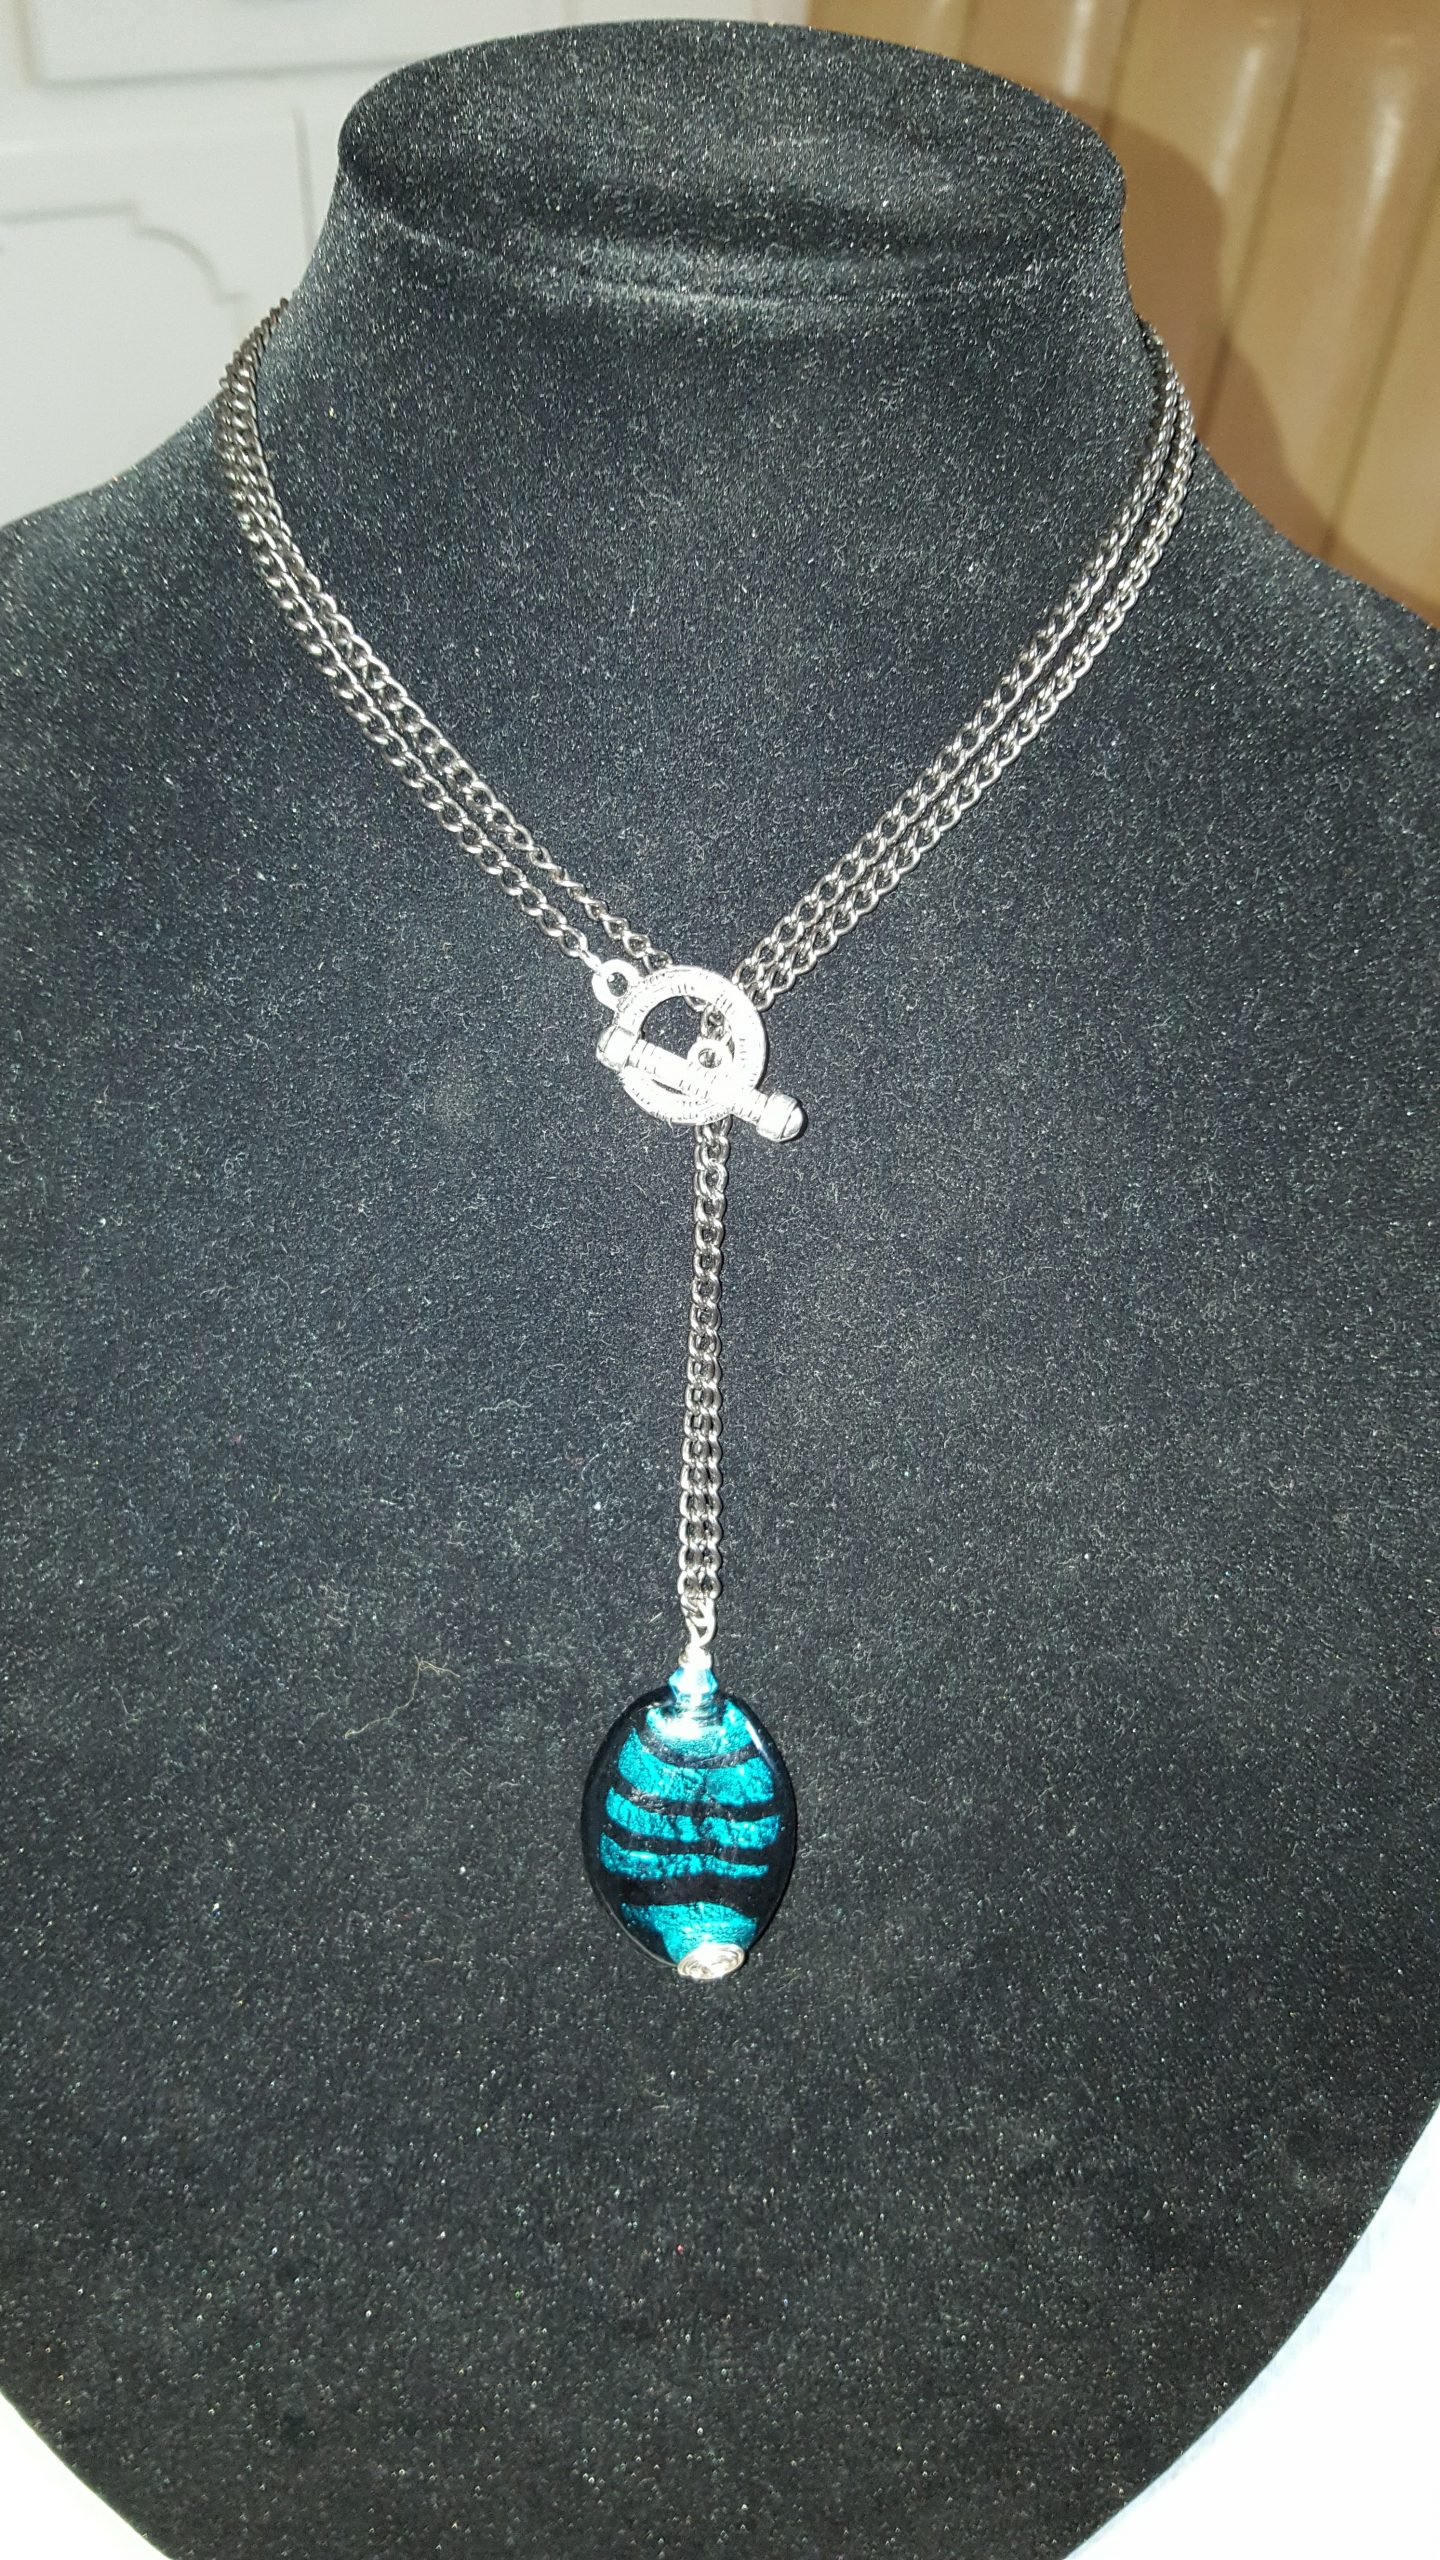 teal/black agate necklace